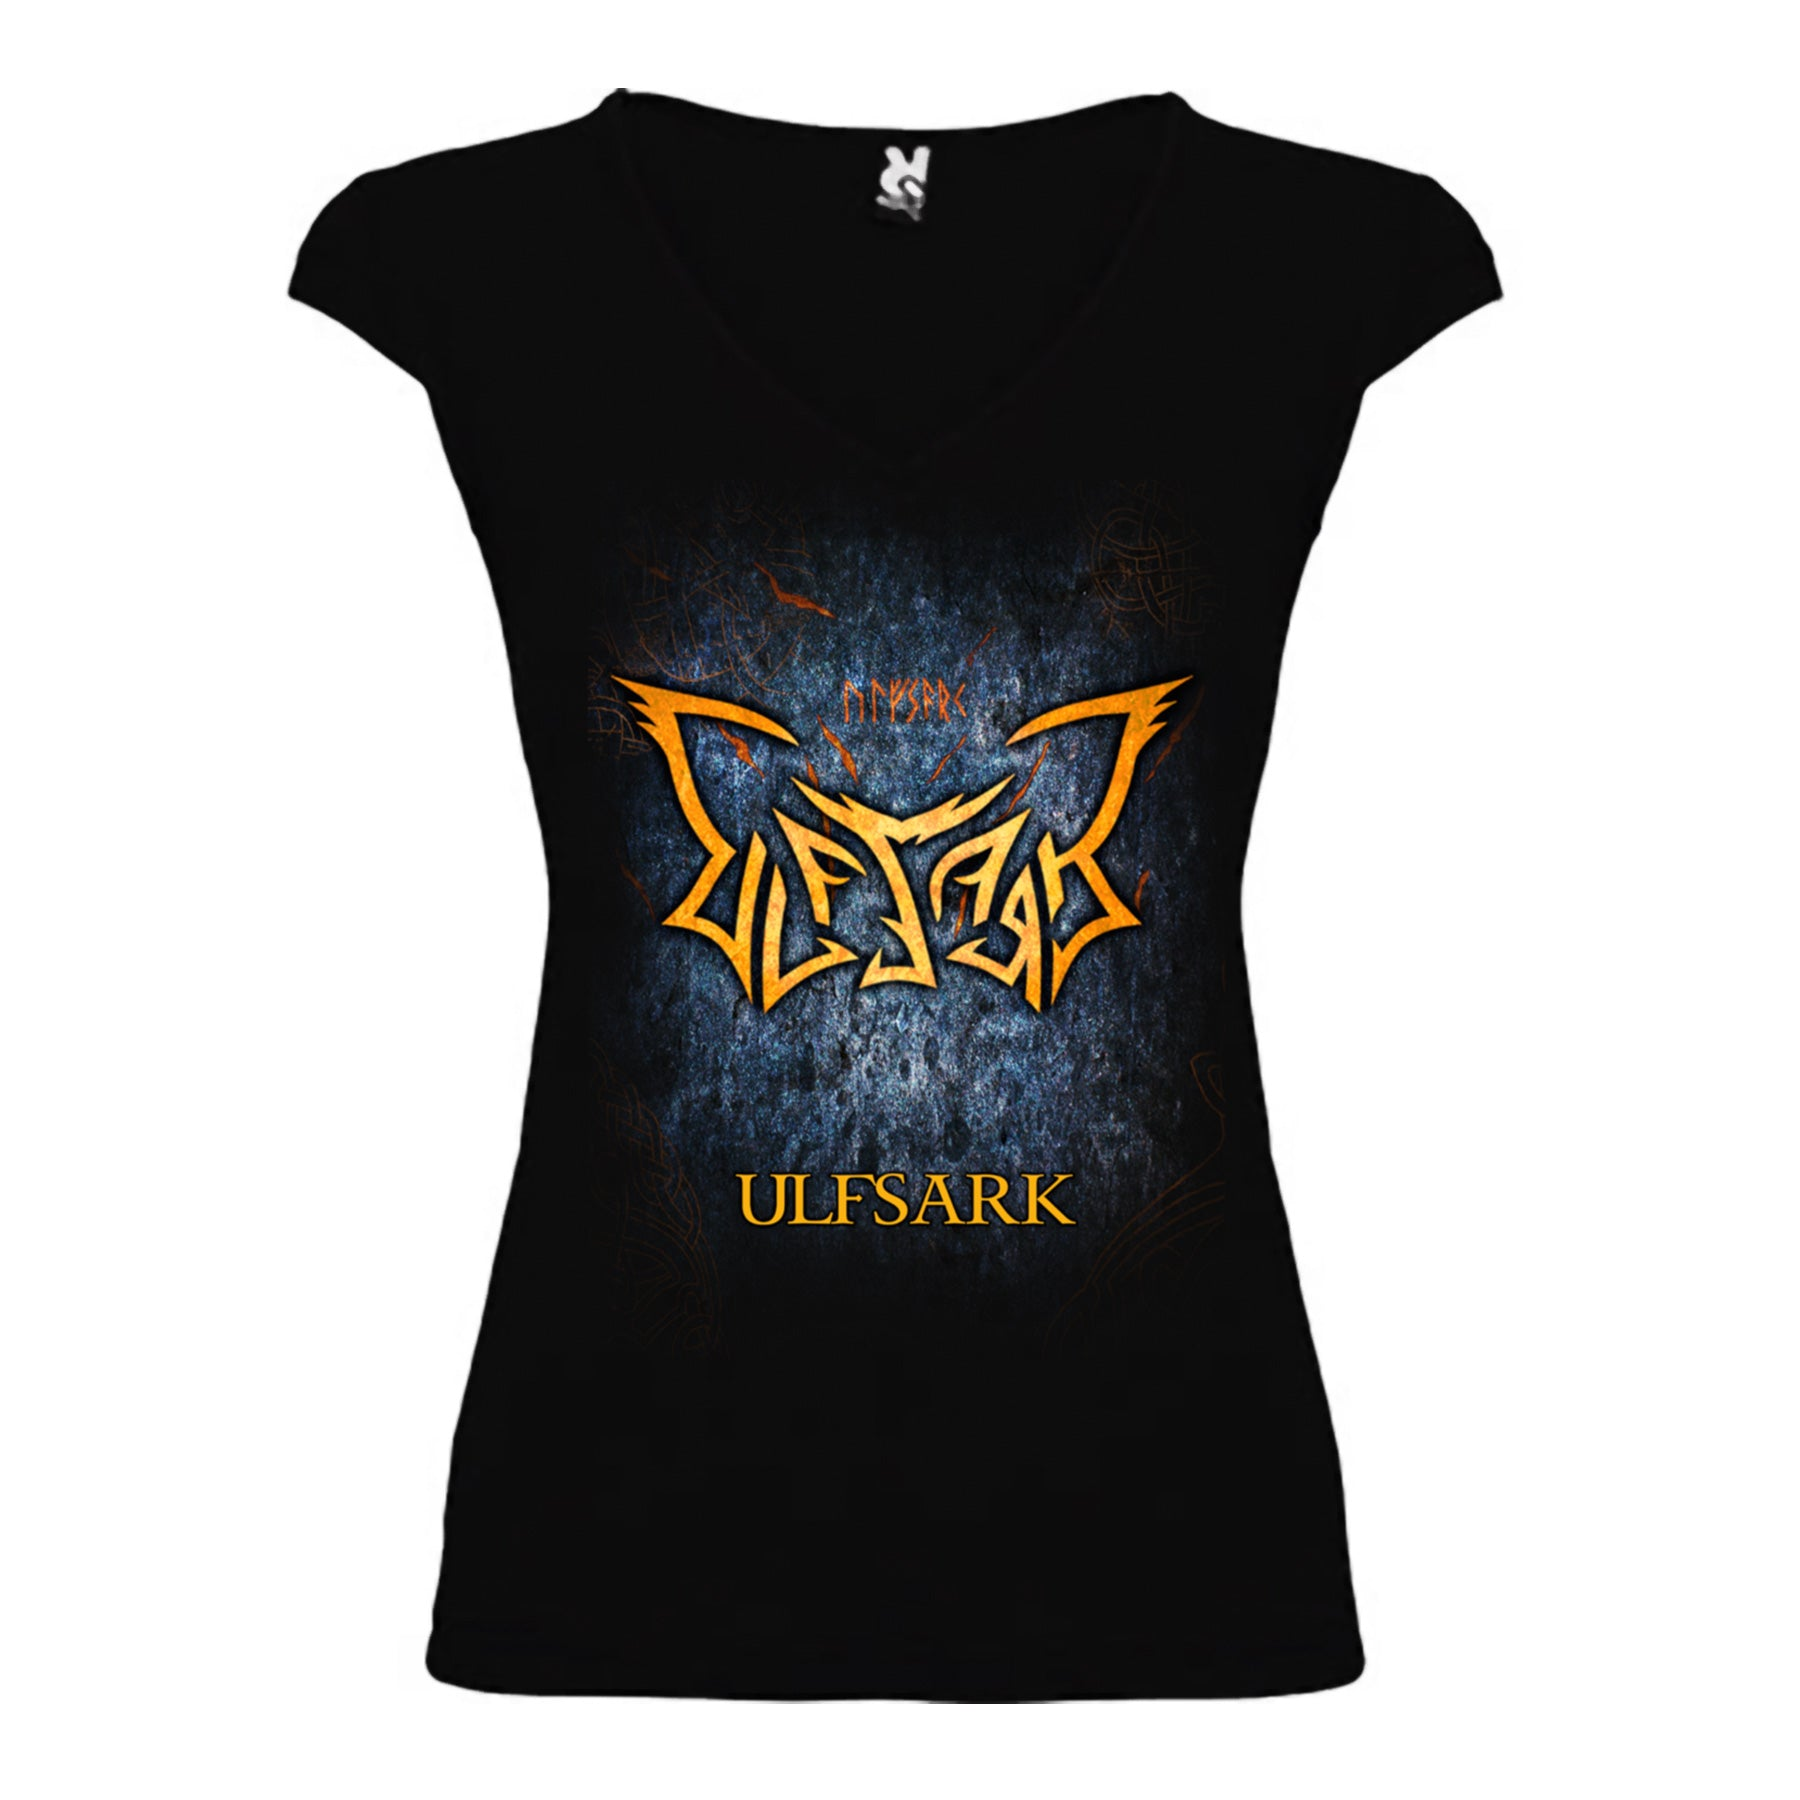 Ulfsark - Camiseta Naked Shoulders Logo Chica - Merchanfy Imprime tus camisetas